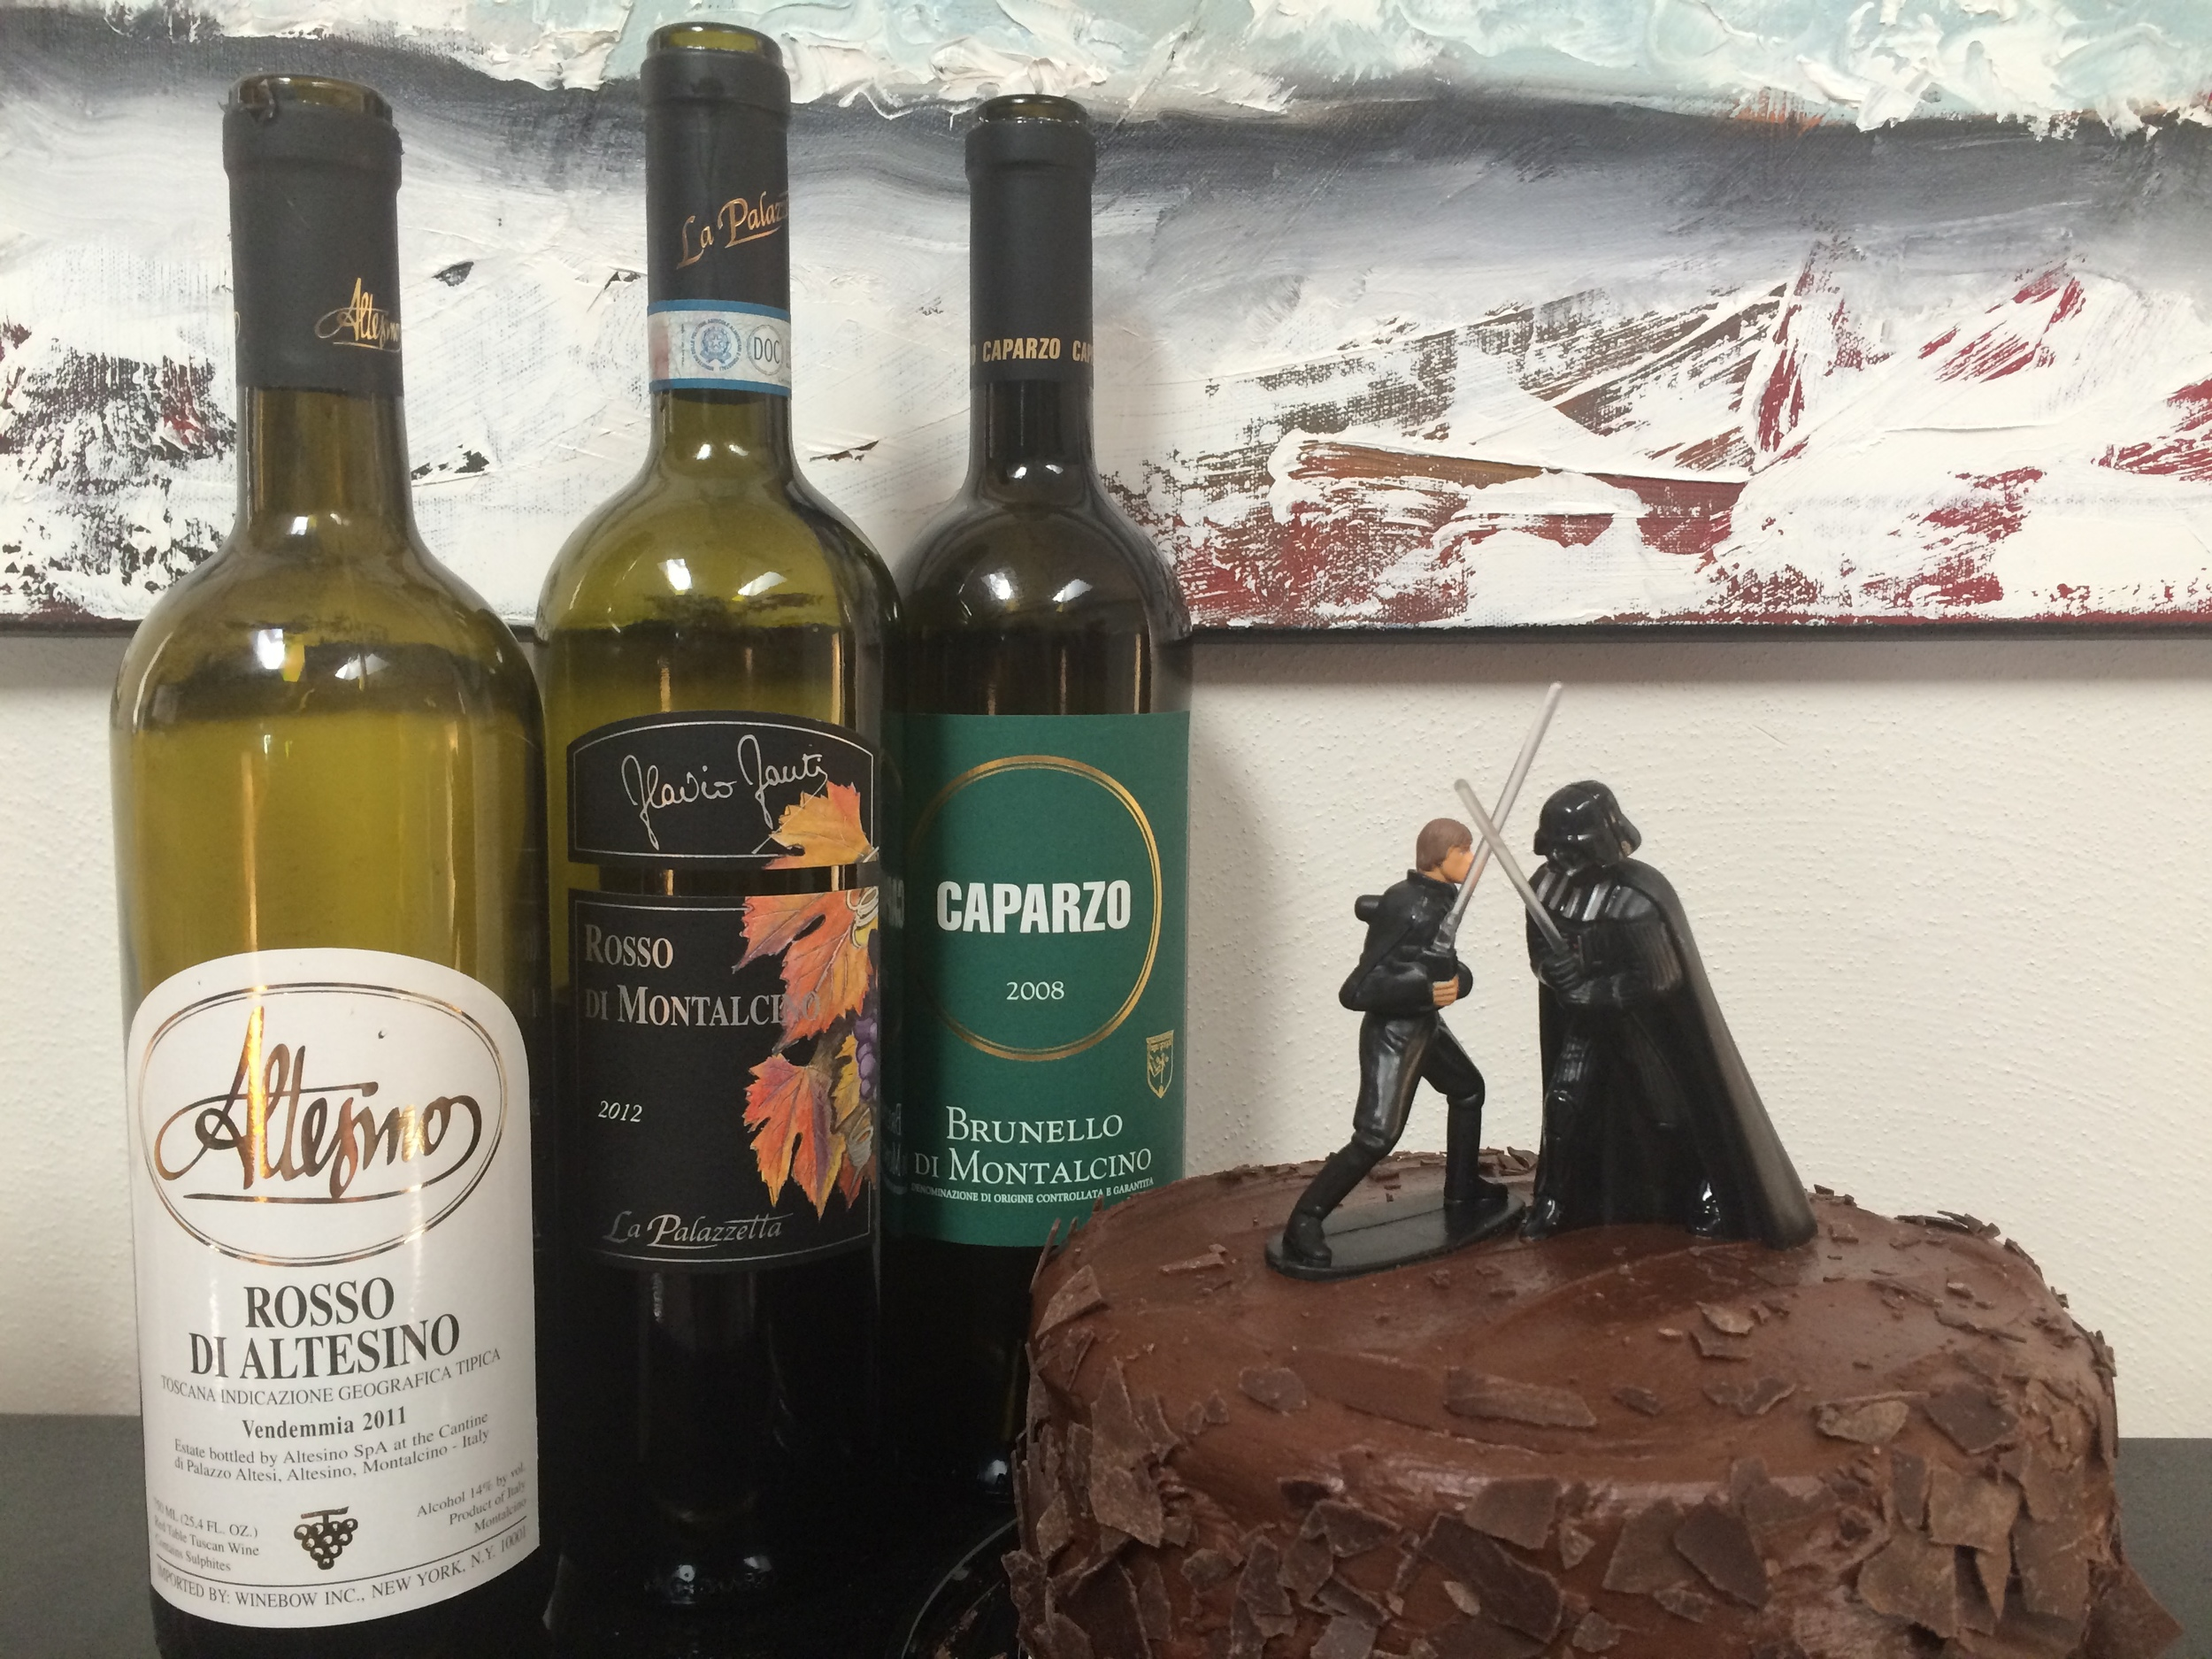 Montalcino wine and Birth Cake